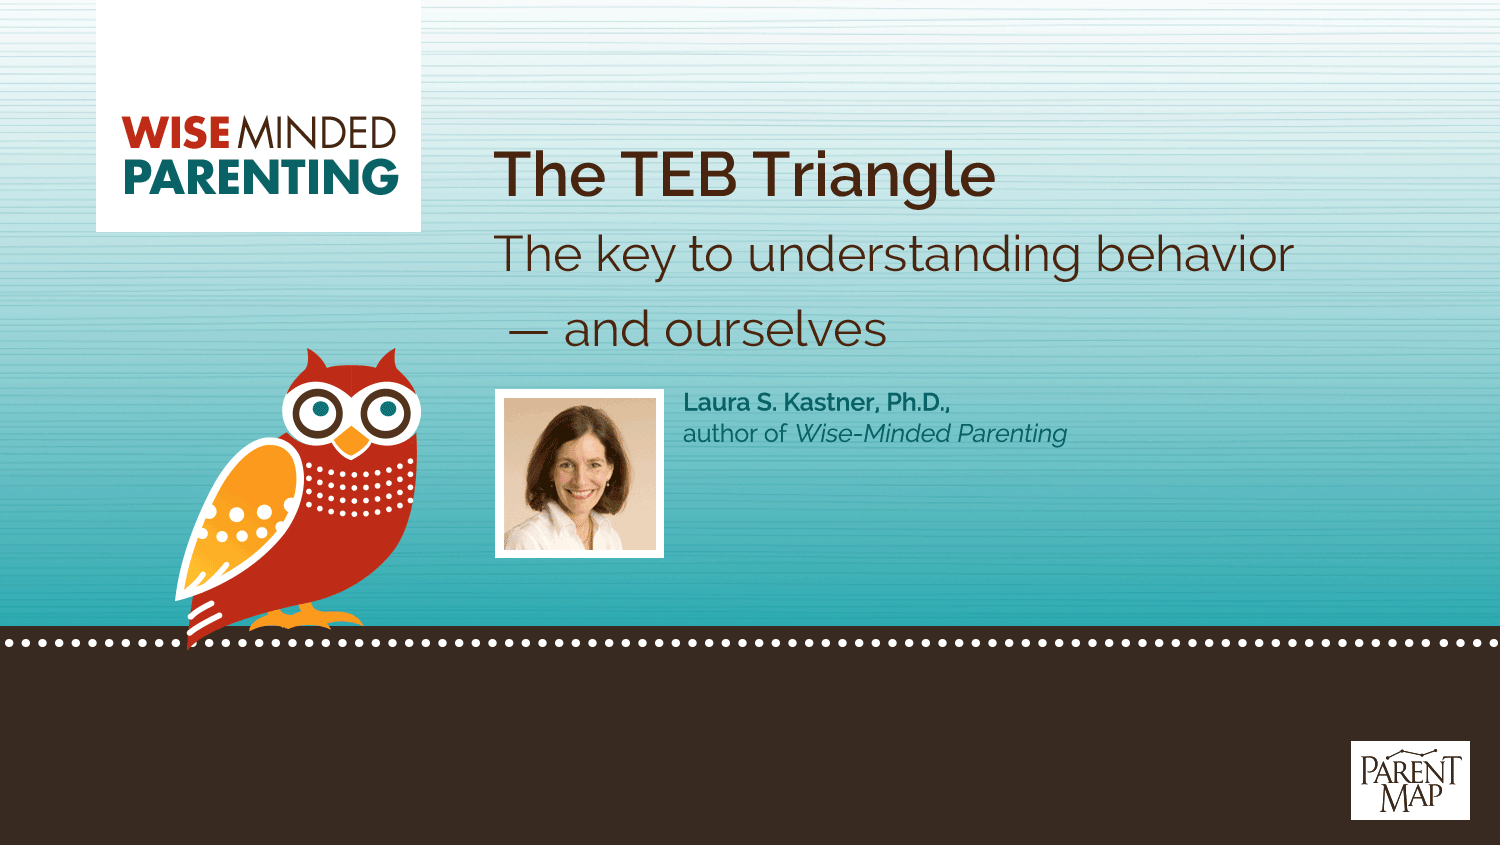 The TEB Triangle